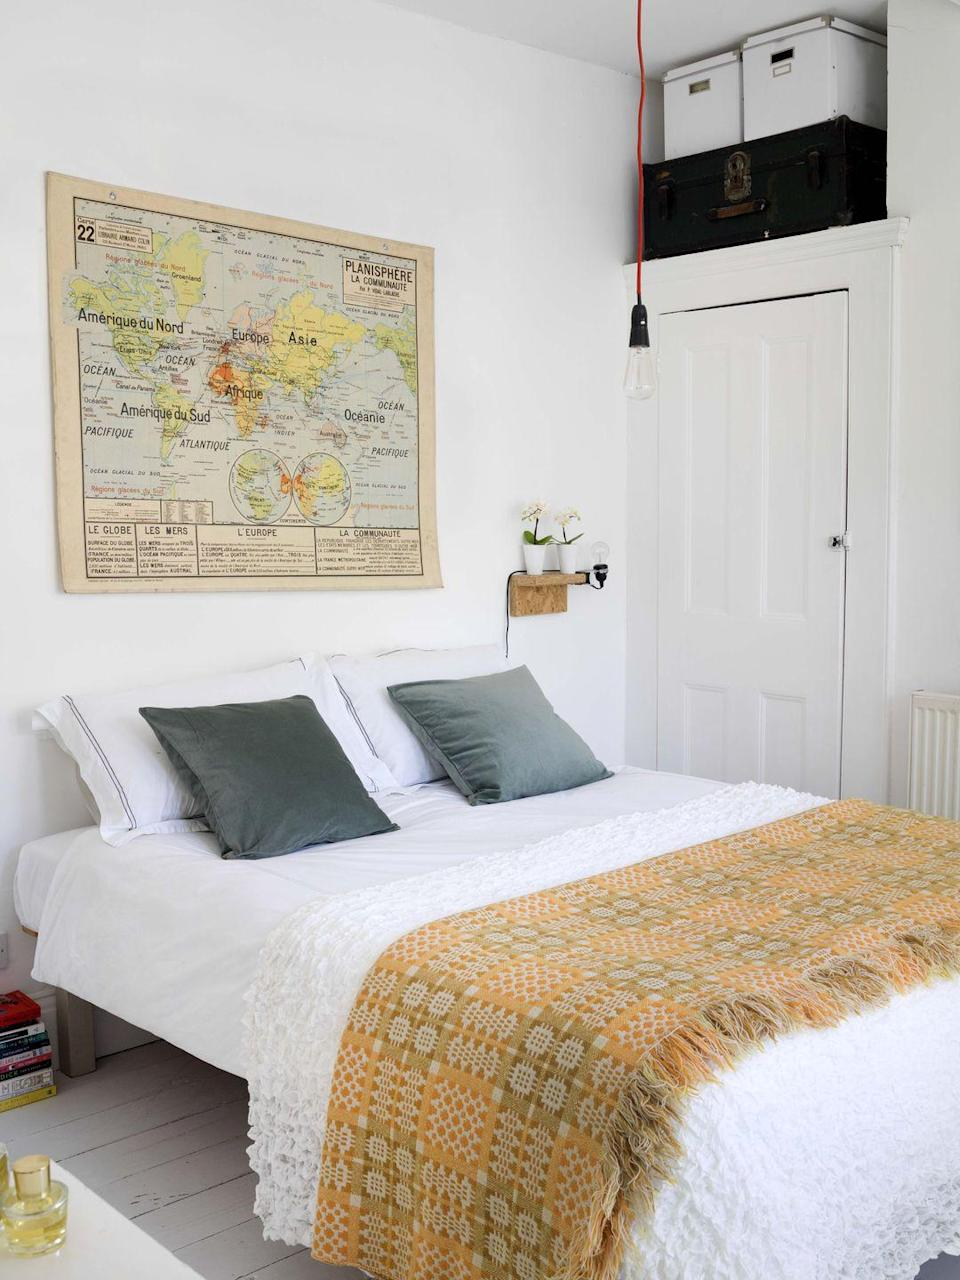 "<p>A vintage map makes a great (and inexpensive!) focal point for this simple bedroom. Shop local thrift stores and markets to find one-of-a-kind pieces. </p><p><a href=""https://www.goodhousekeeping.com/home/decorating-ideas/g33339519/boho-living-room-ideas/"" rel=""nofollow noopener"" target=""_blank"" data-ylk=""slk:RELATED: 12 Inspiring Boho Living Room Ideas"" class=""link rapid-noclick-resp""><strong>RELATED:</strong> 12 Inspiring Boho Living Room Ideas</a></p>"